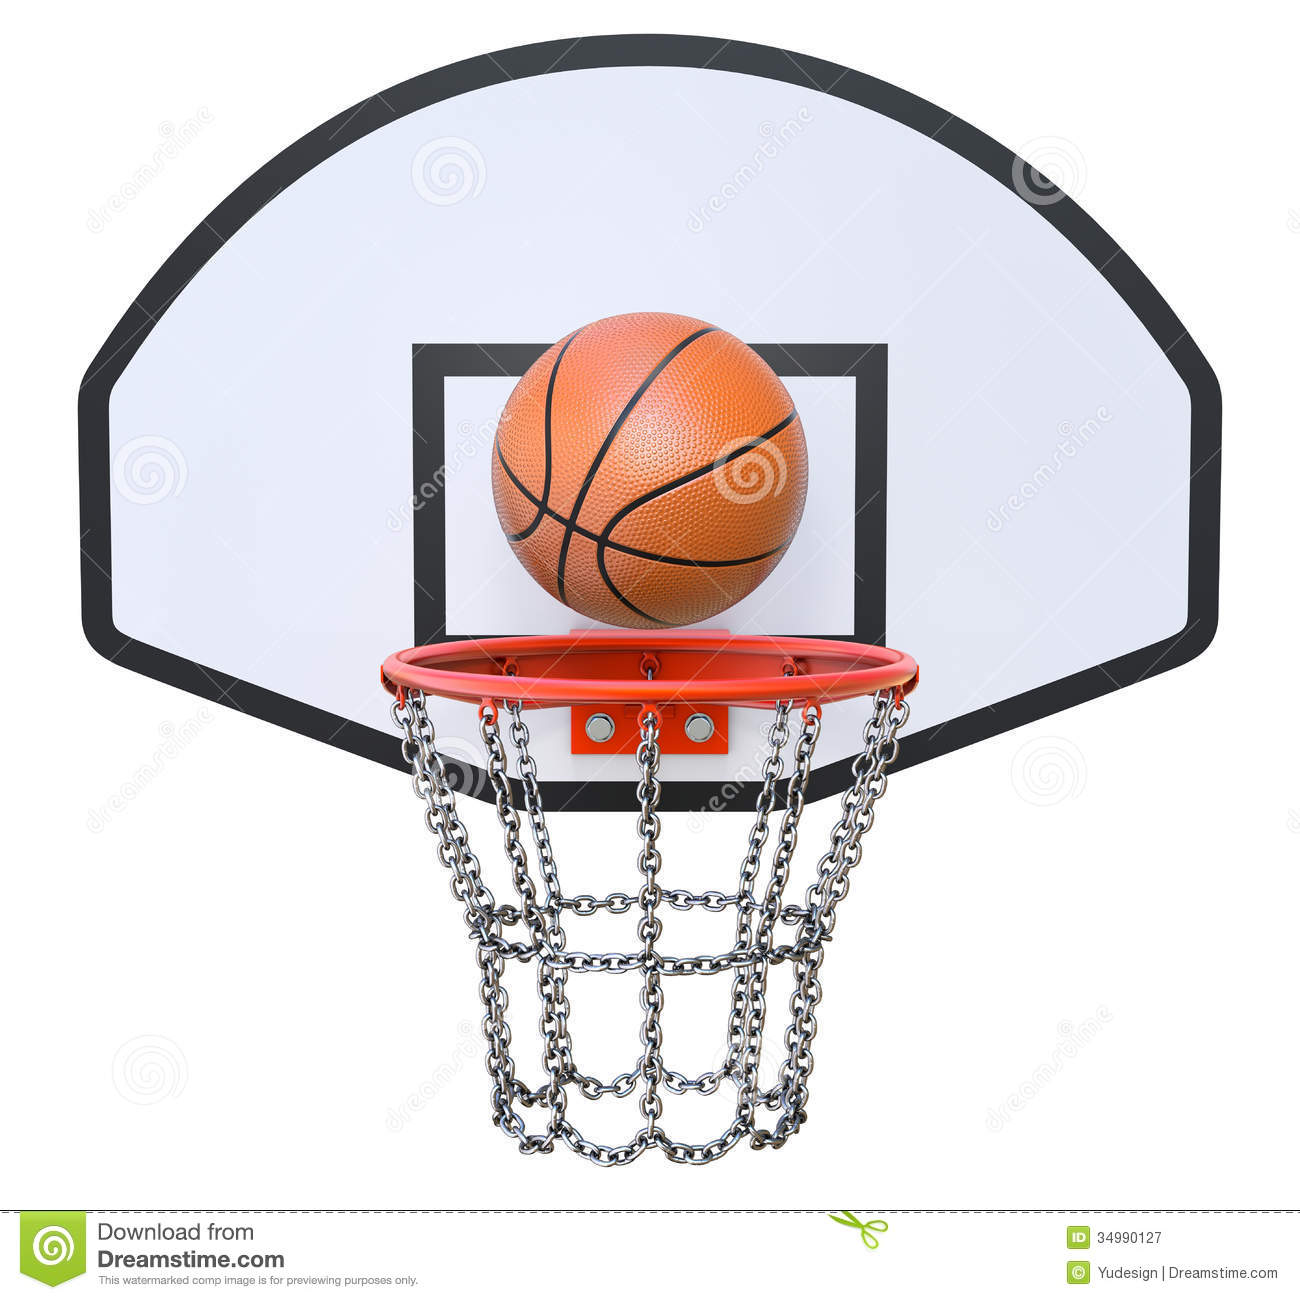 Street basketball kit stock illustration. Image of white - 34990127